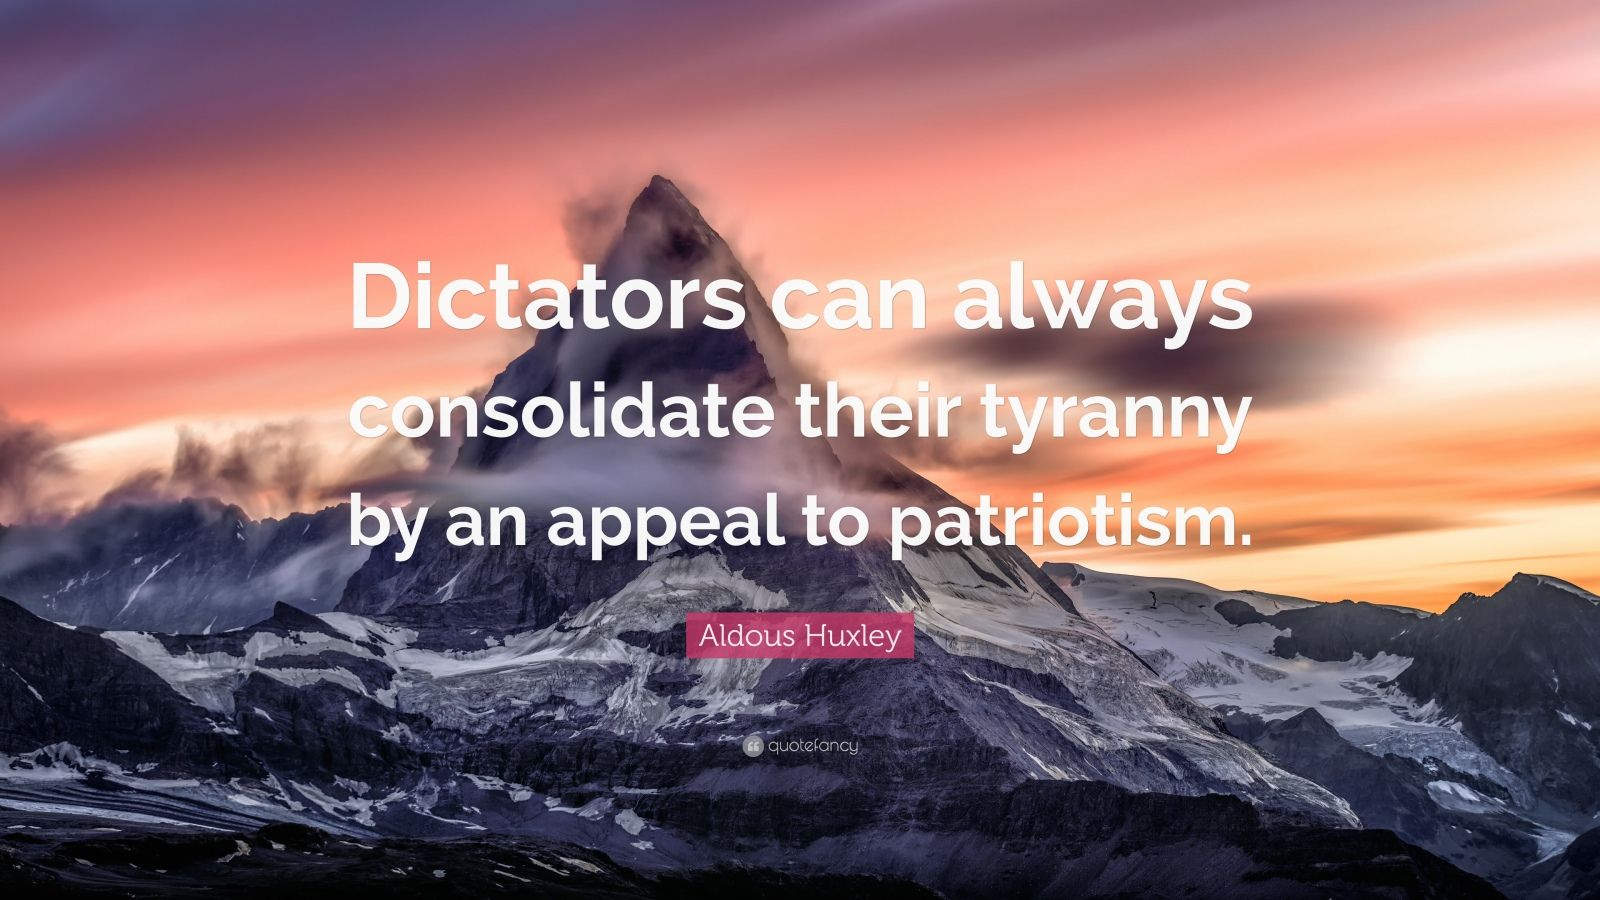 """Aldous Huxley Quote: """"Dictators can always consolidate their tyranny by an appeal to patriotism."""""""